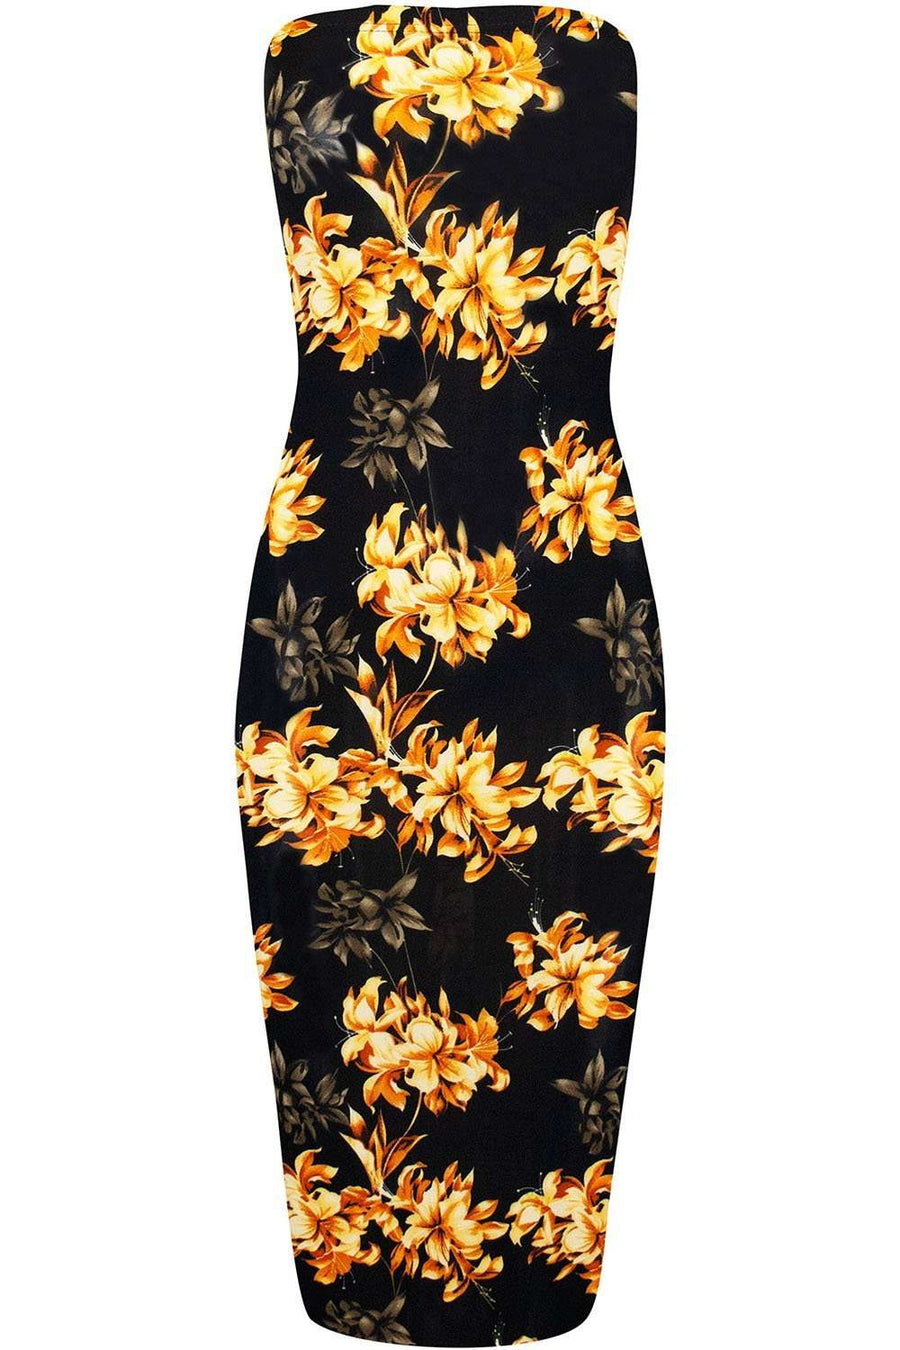 Tropical Print Bandeau Yellow Floral Midi Tube Dress